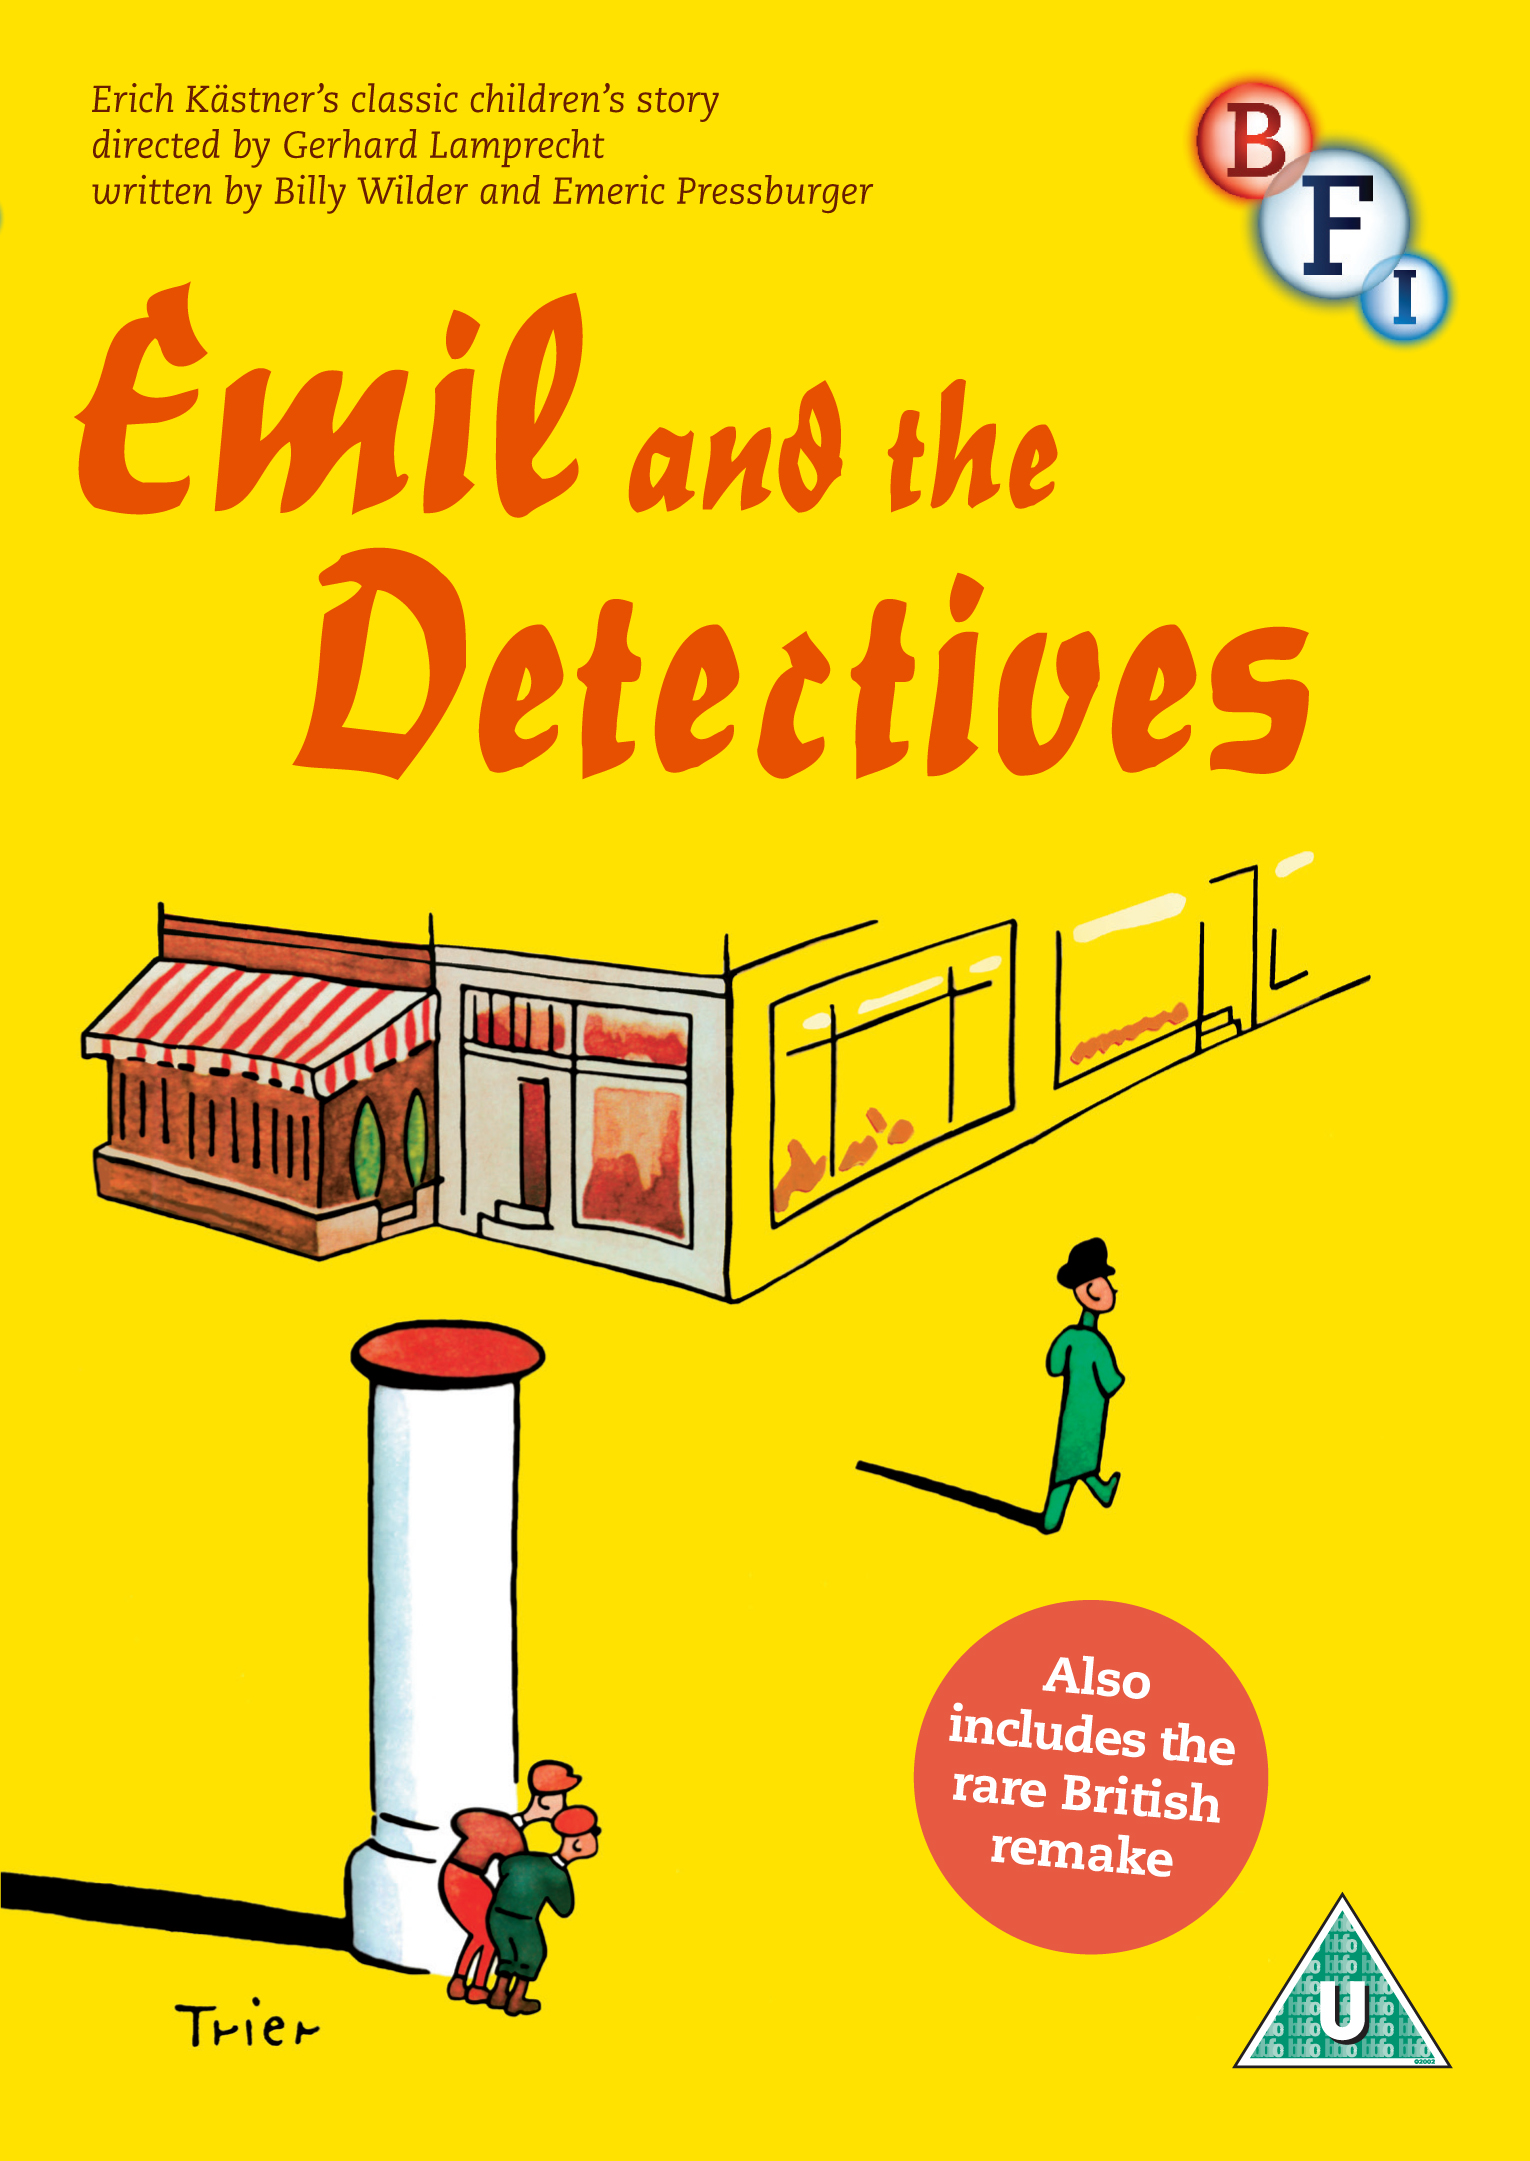 Buy Emil and the Detectives (DVD)